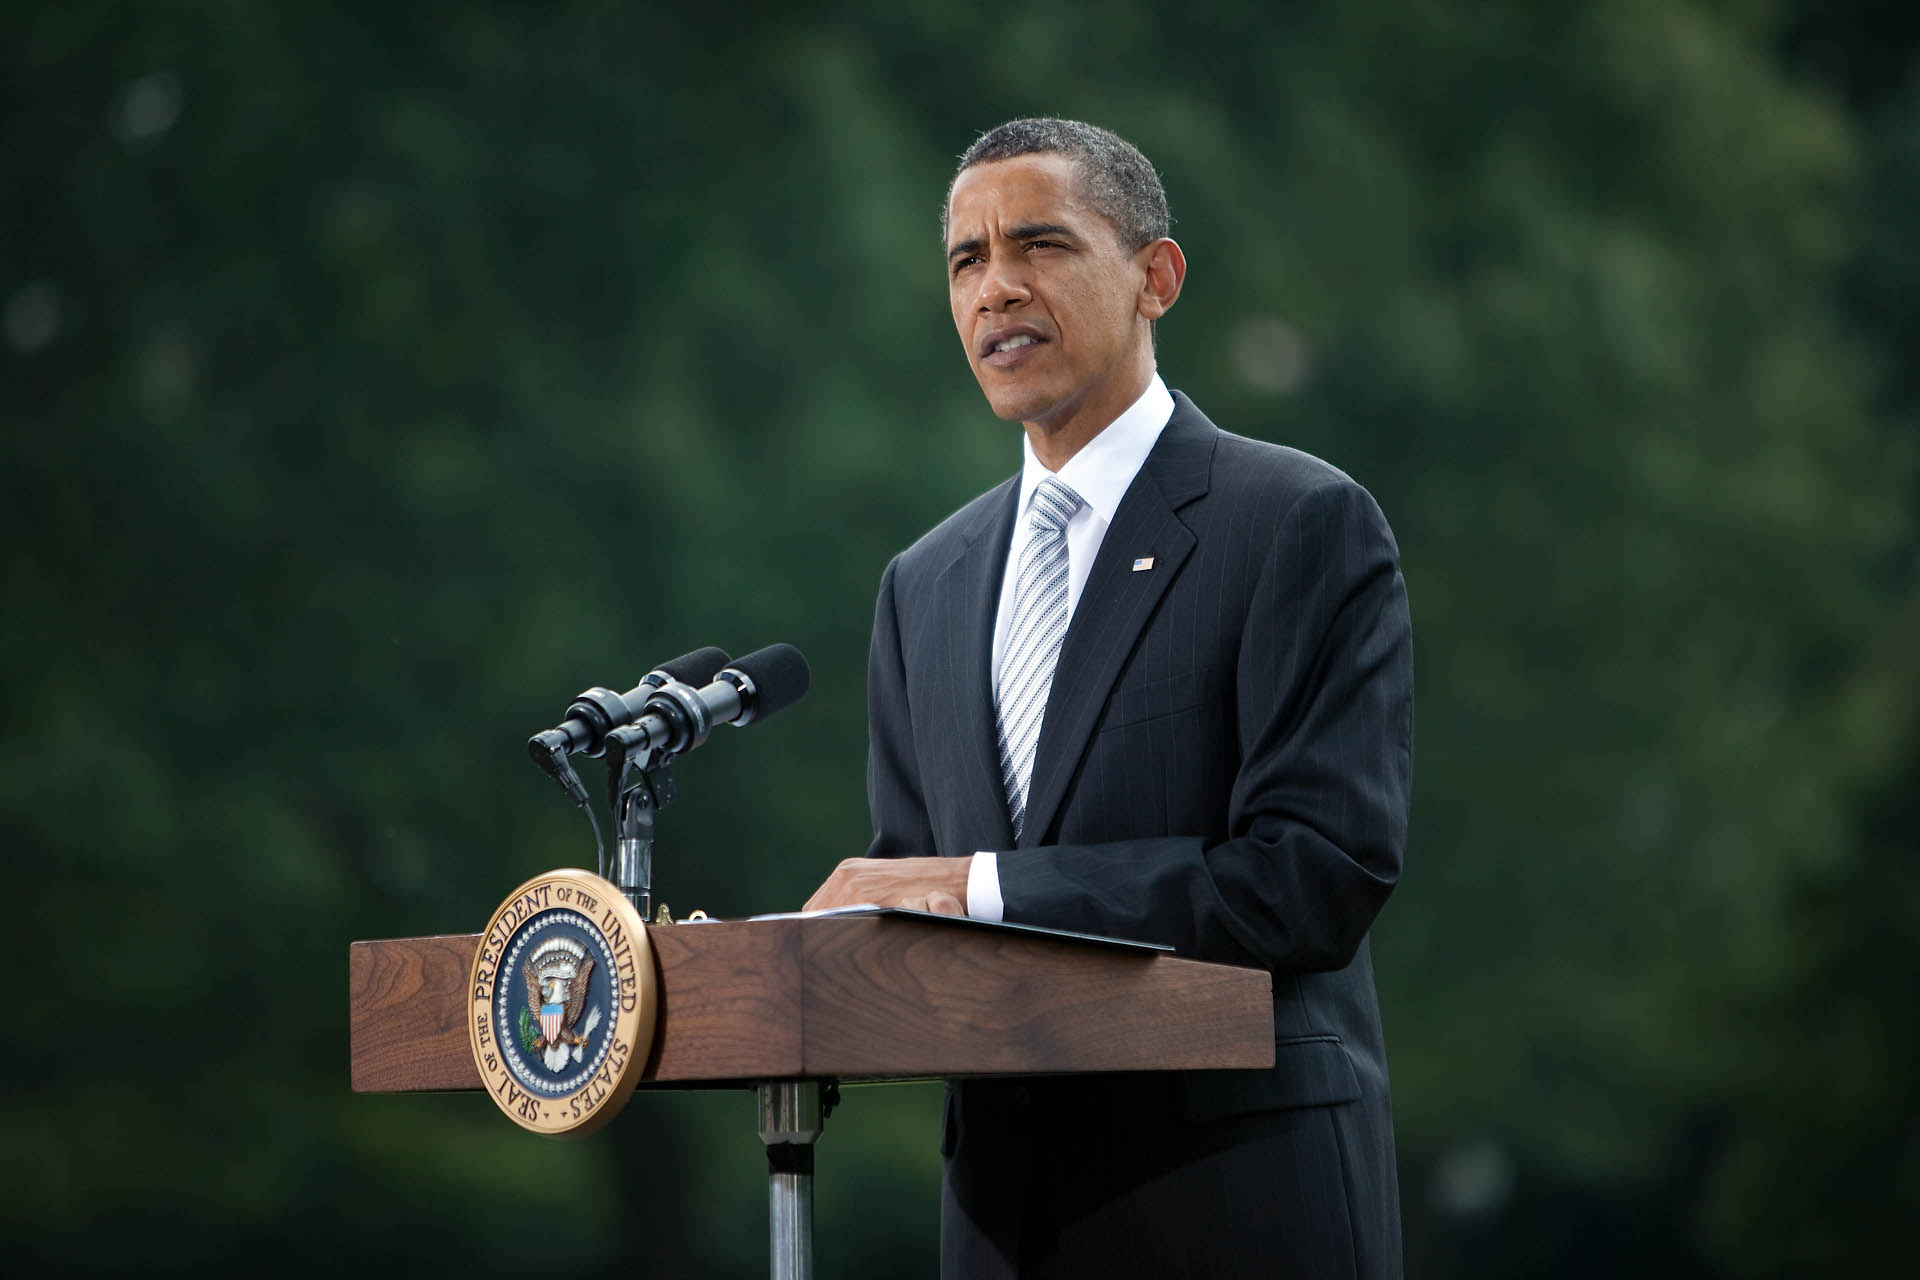 President Obama speaks on the economy and jobs